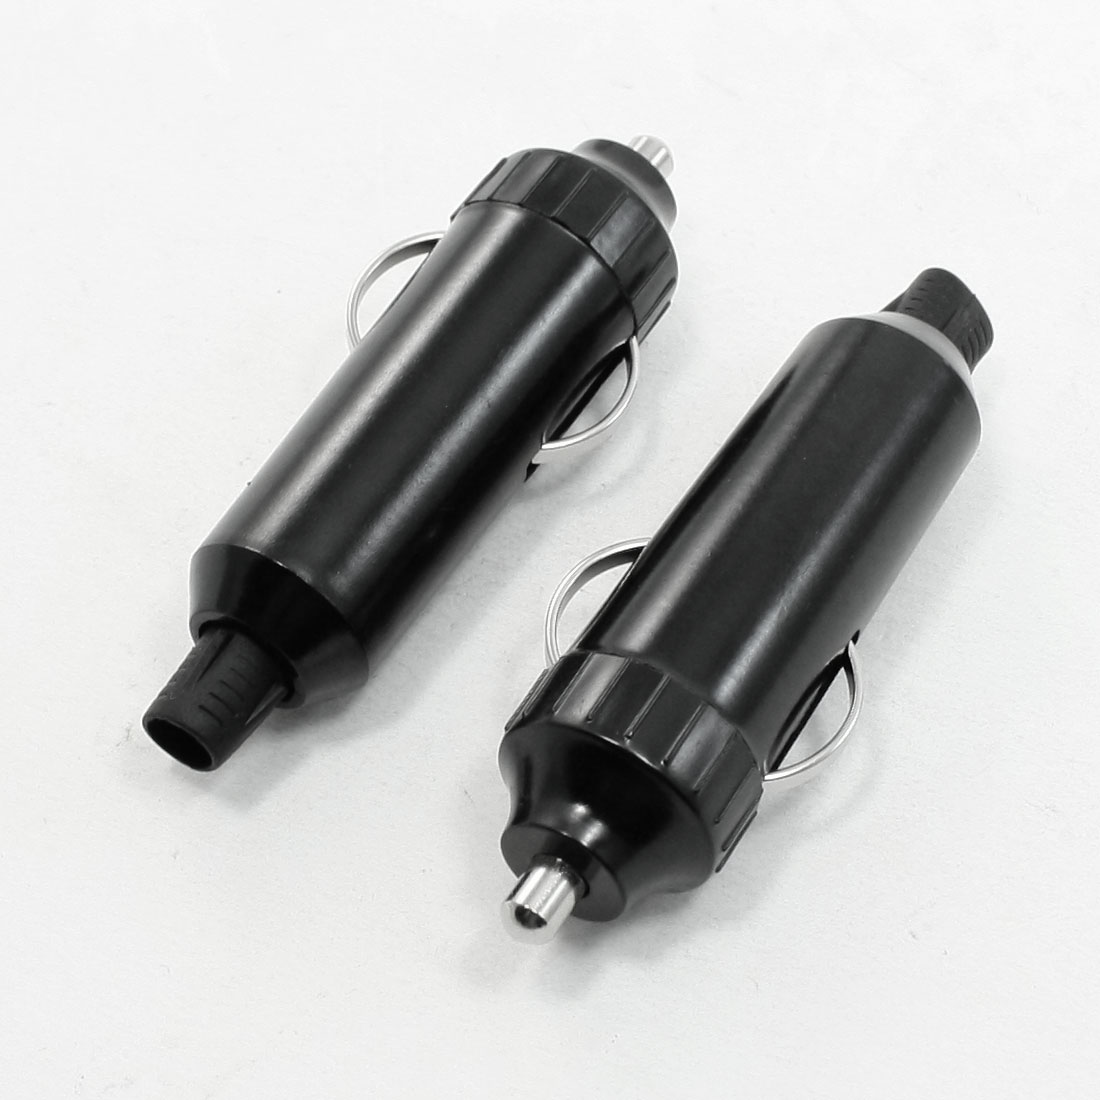 2 Pcs Universal Auto Car Cigarette Lighter Plug DC 12-24V